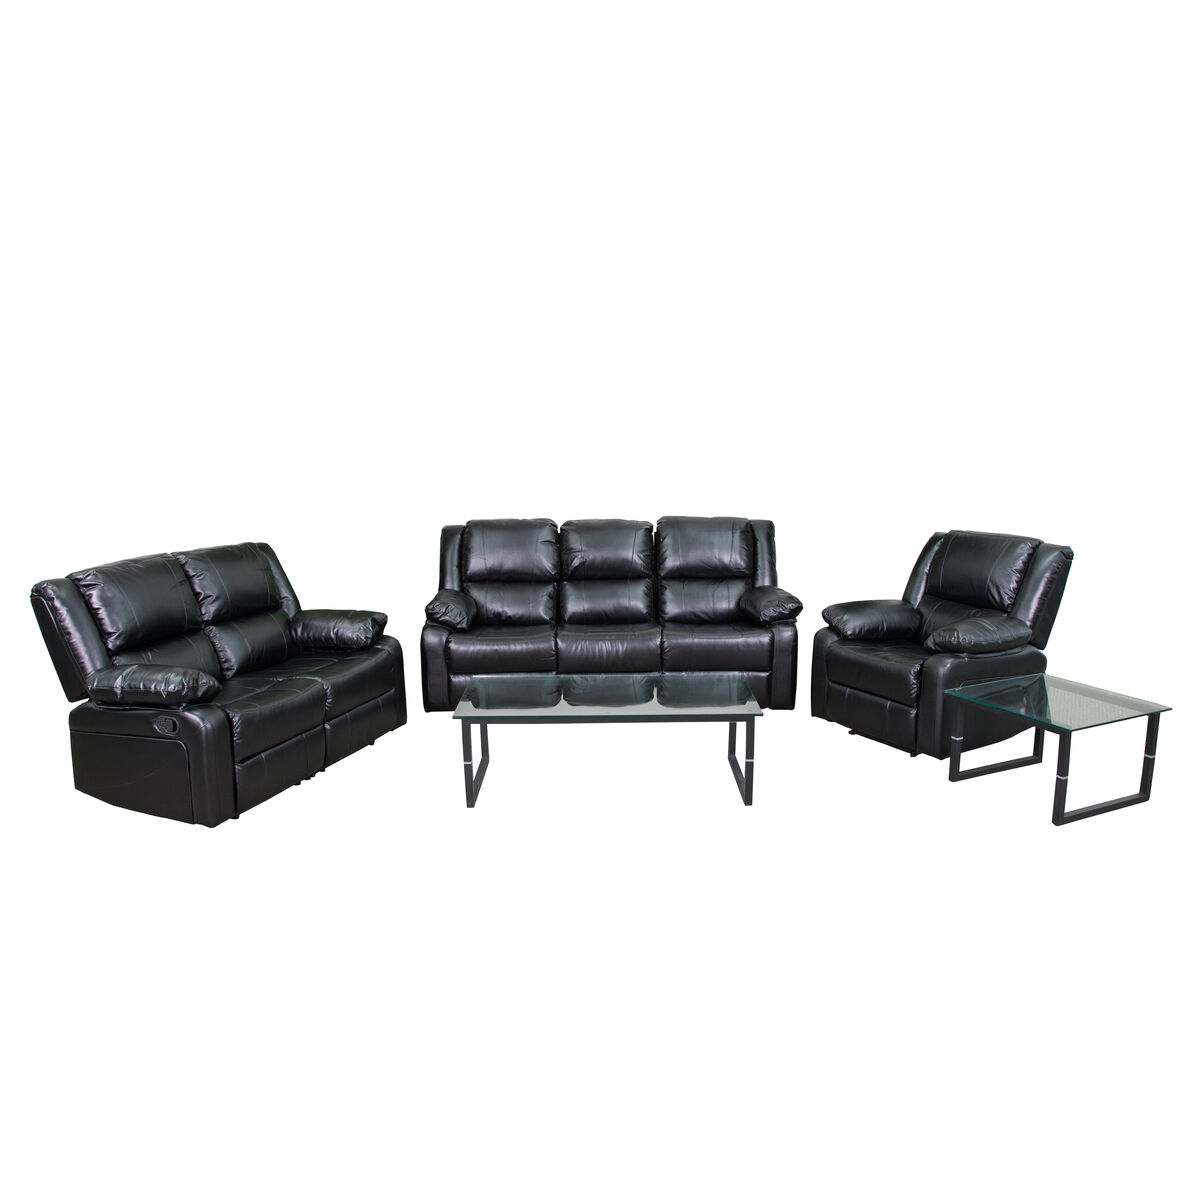 Our Harmony Series Black Leather Reclining Sofa Set Is On Now